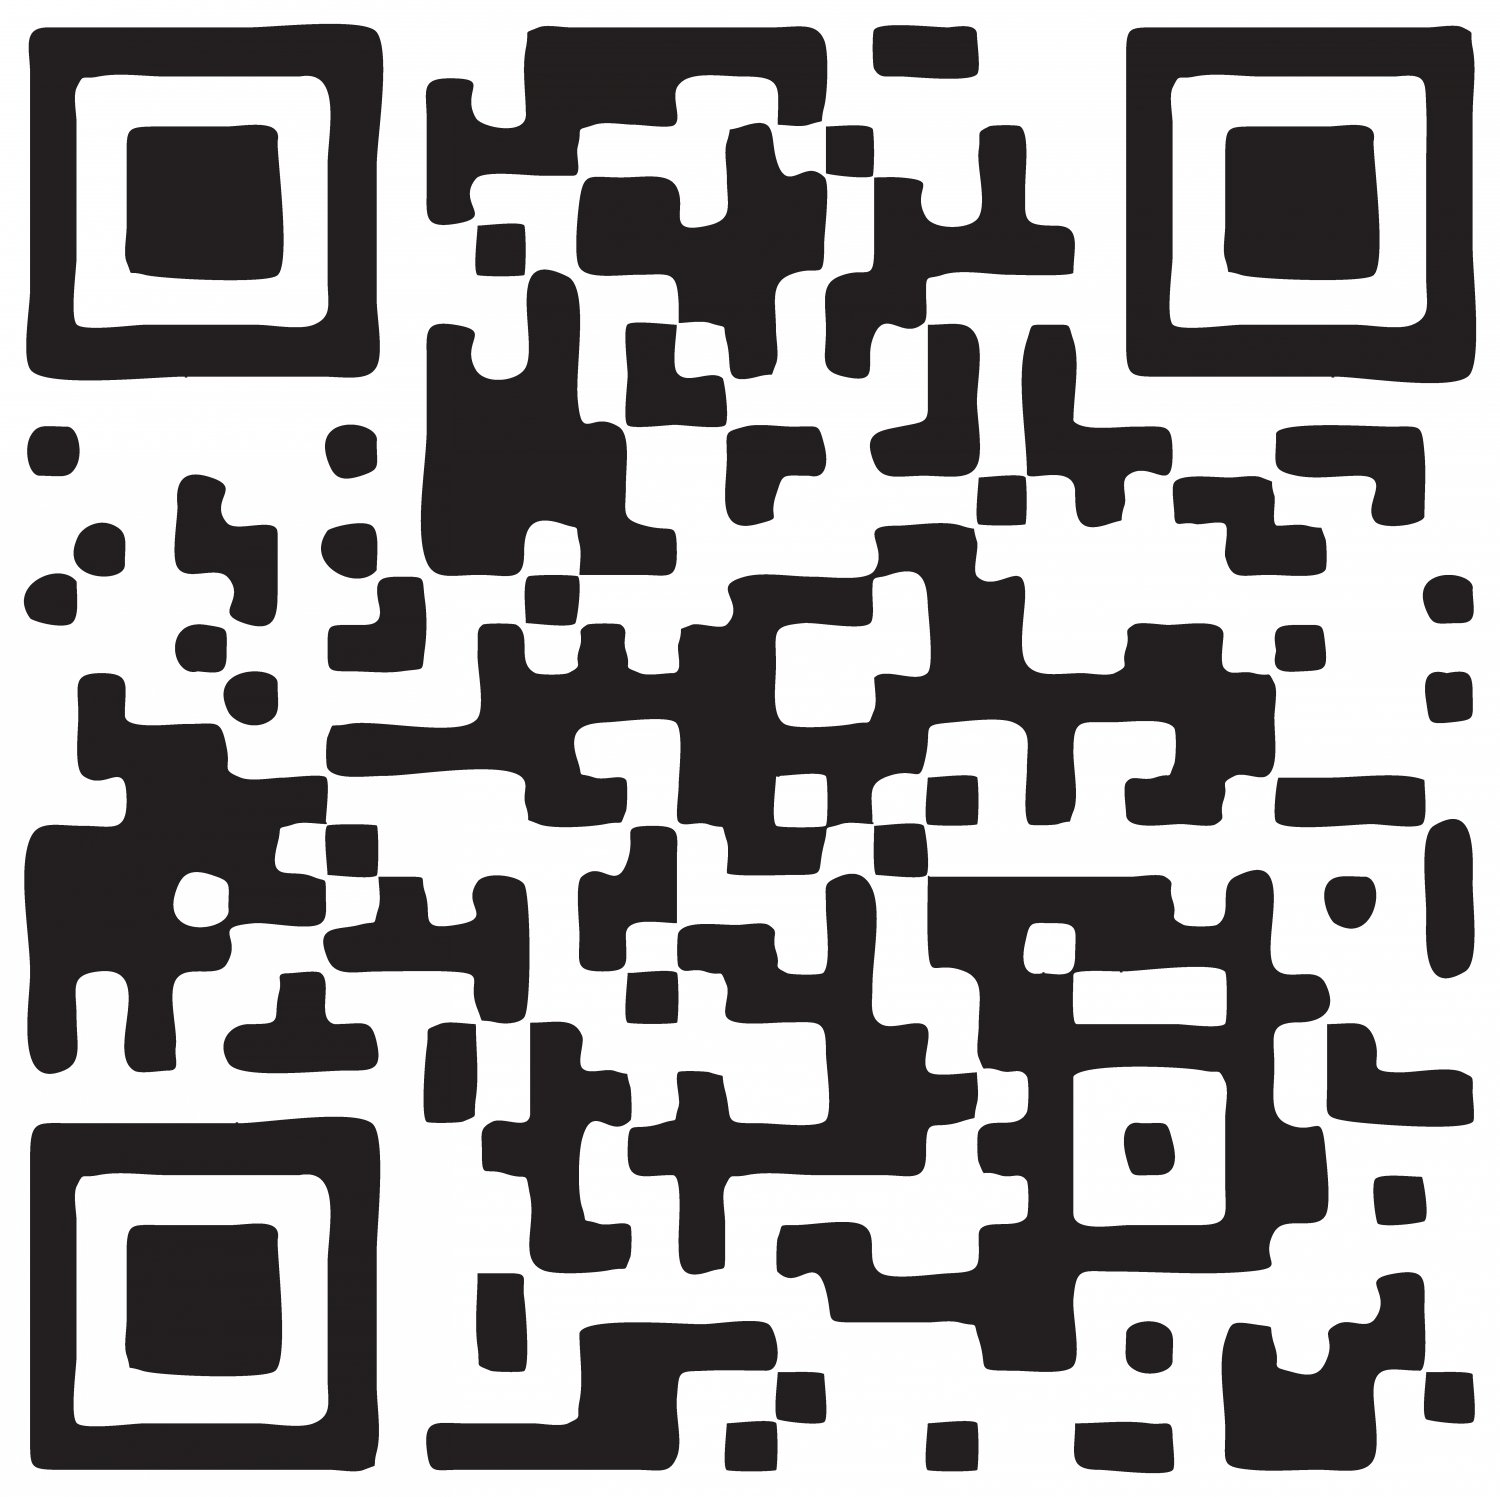 - Never leave your QR code out in the sun on a hot day. -  - Art and the Zen of QR Codes - QaRt - making art from QR codes. - Tony Karp, design, art, photography, techno-impressionist, techno-impressionism, aerial photography , drone , drones , dji , mavic pro , video , 3D printing - Books -